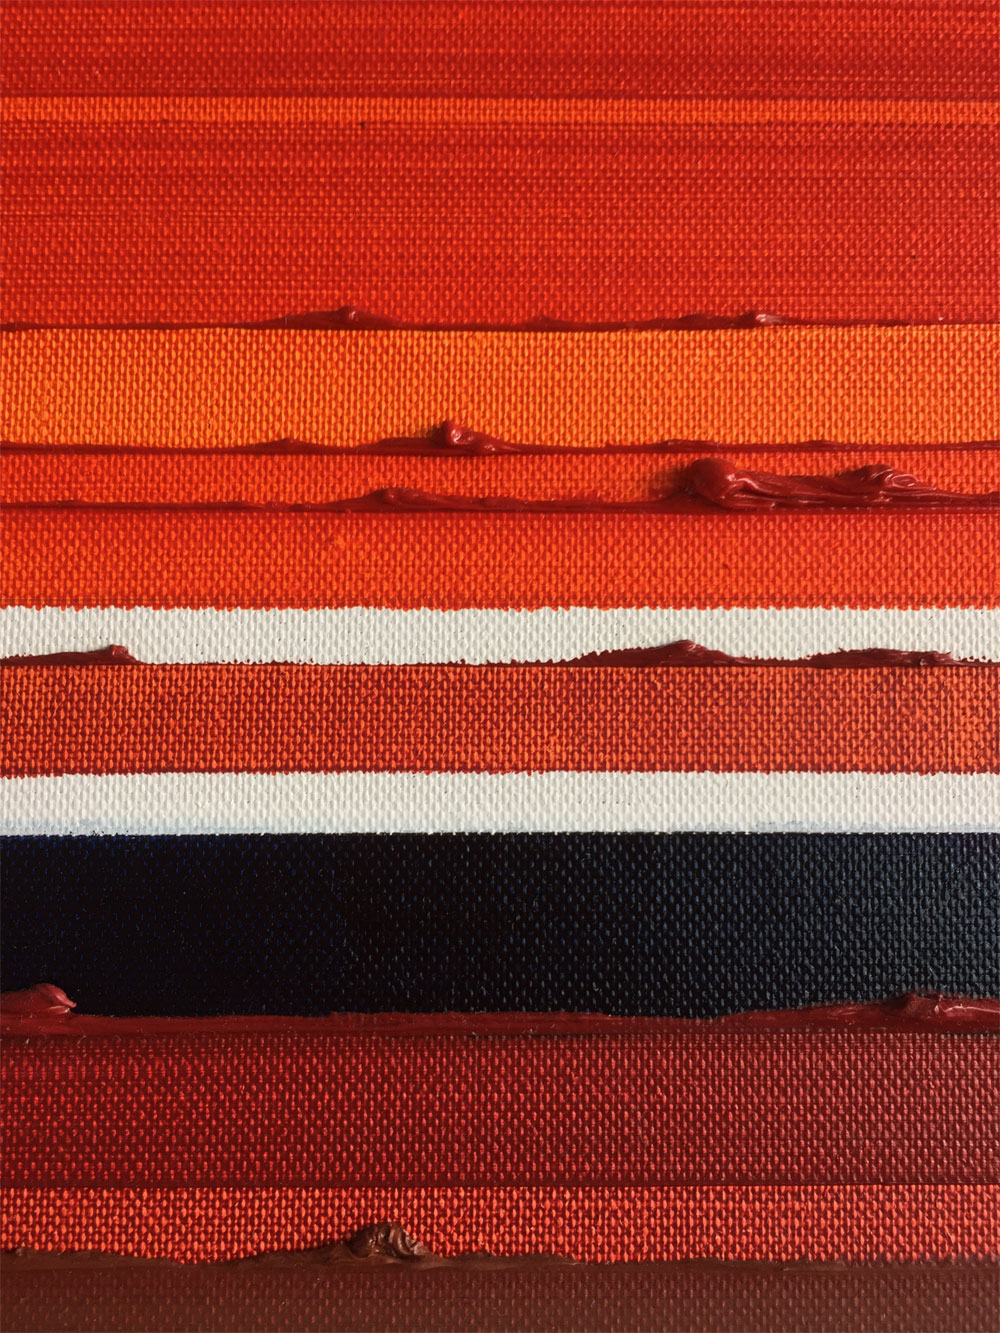 Detail of Stripes Orange Oil Painting by Rose Long